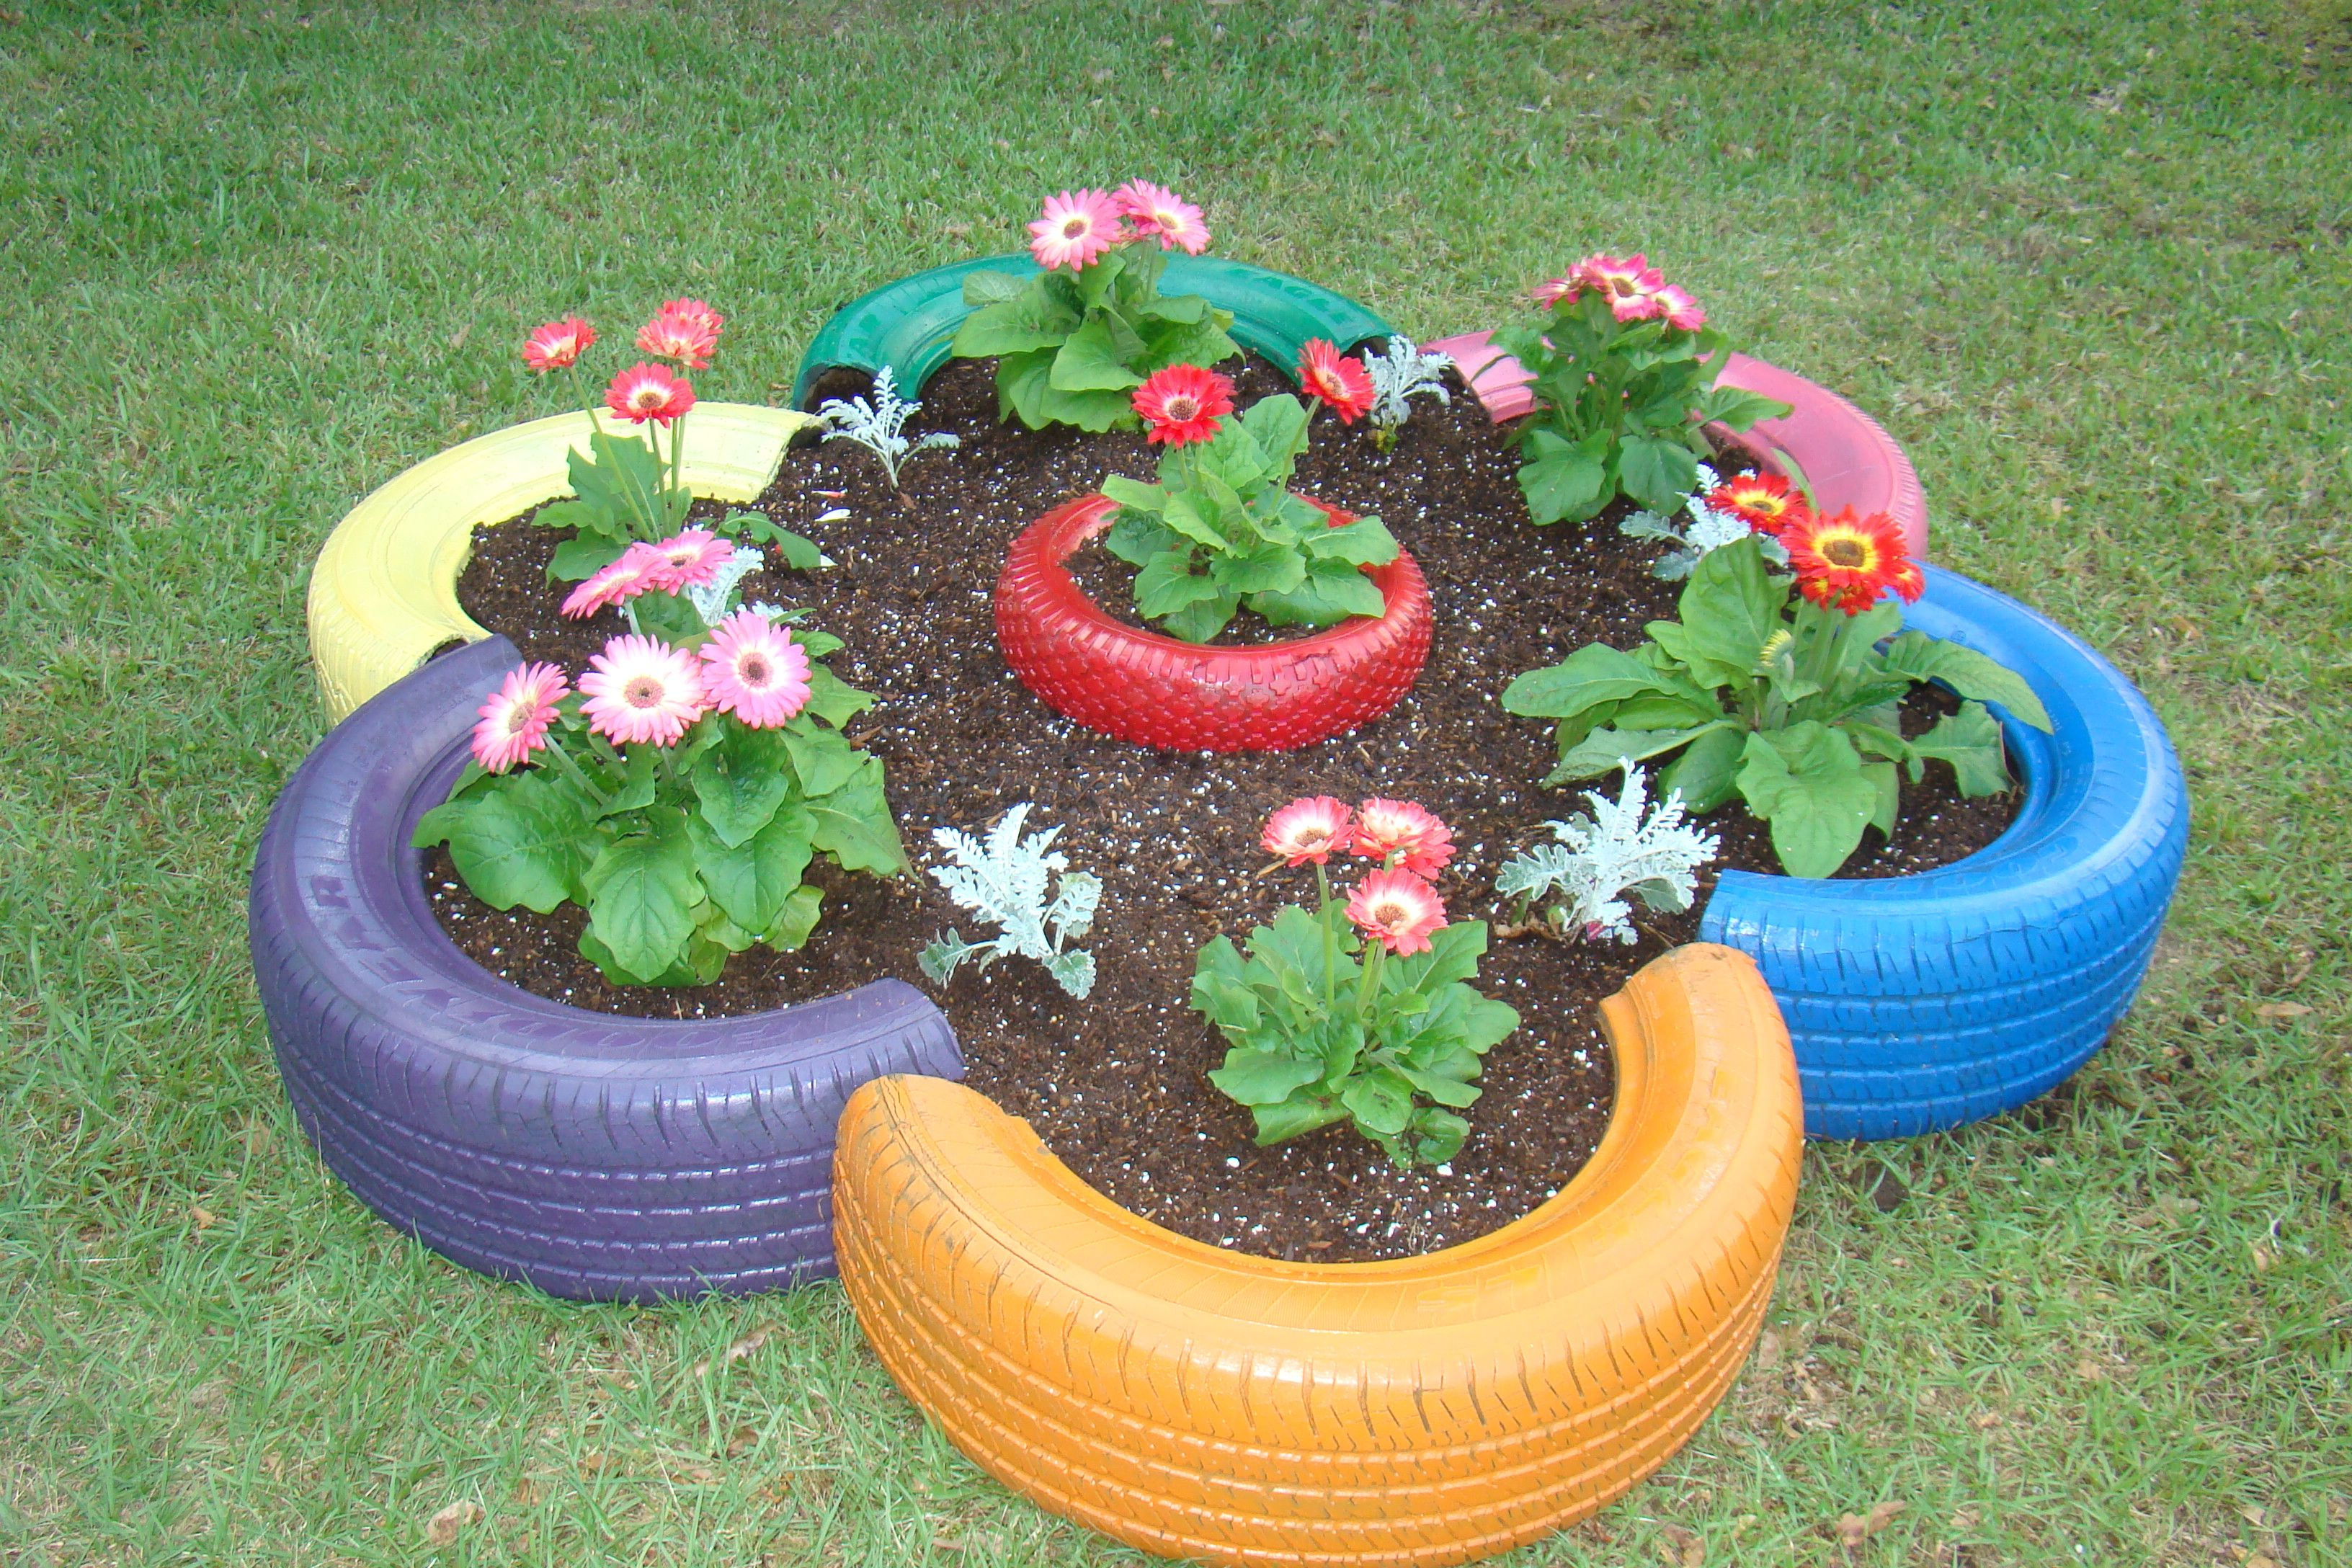 flower bed made from old tires and small tire in the